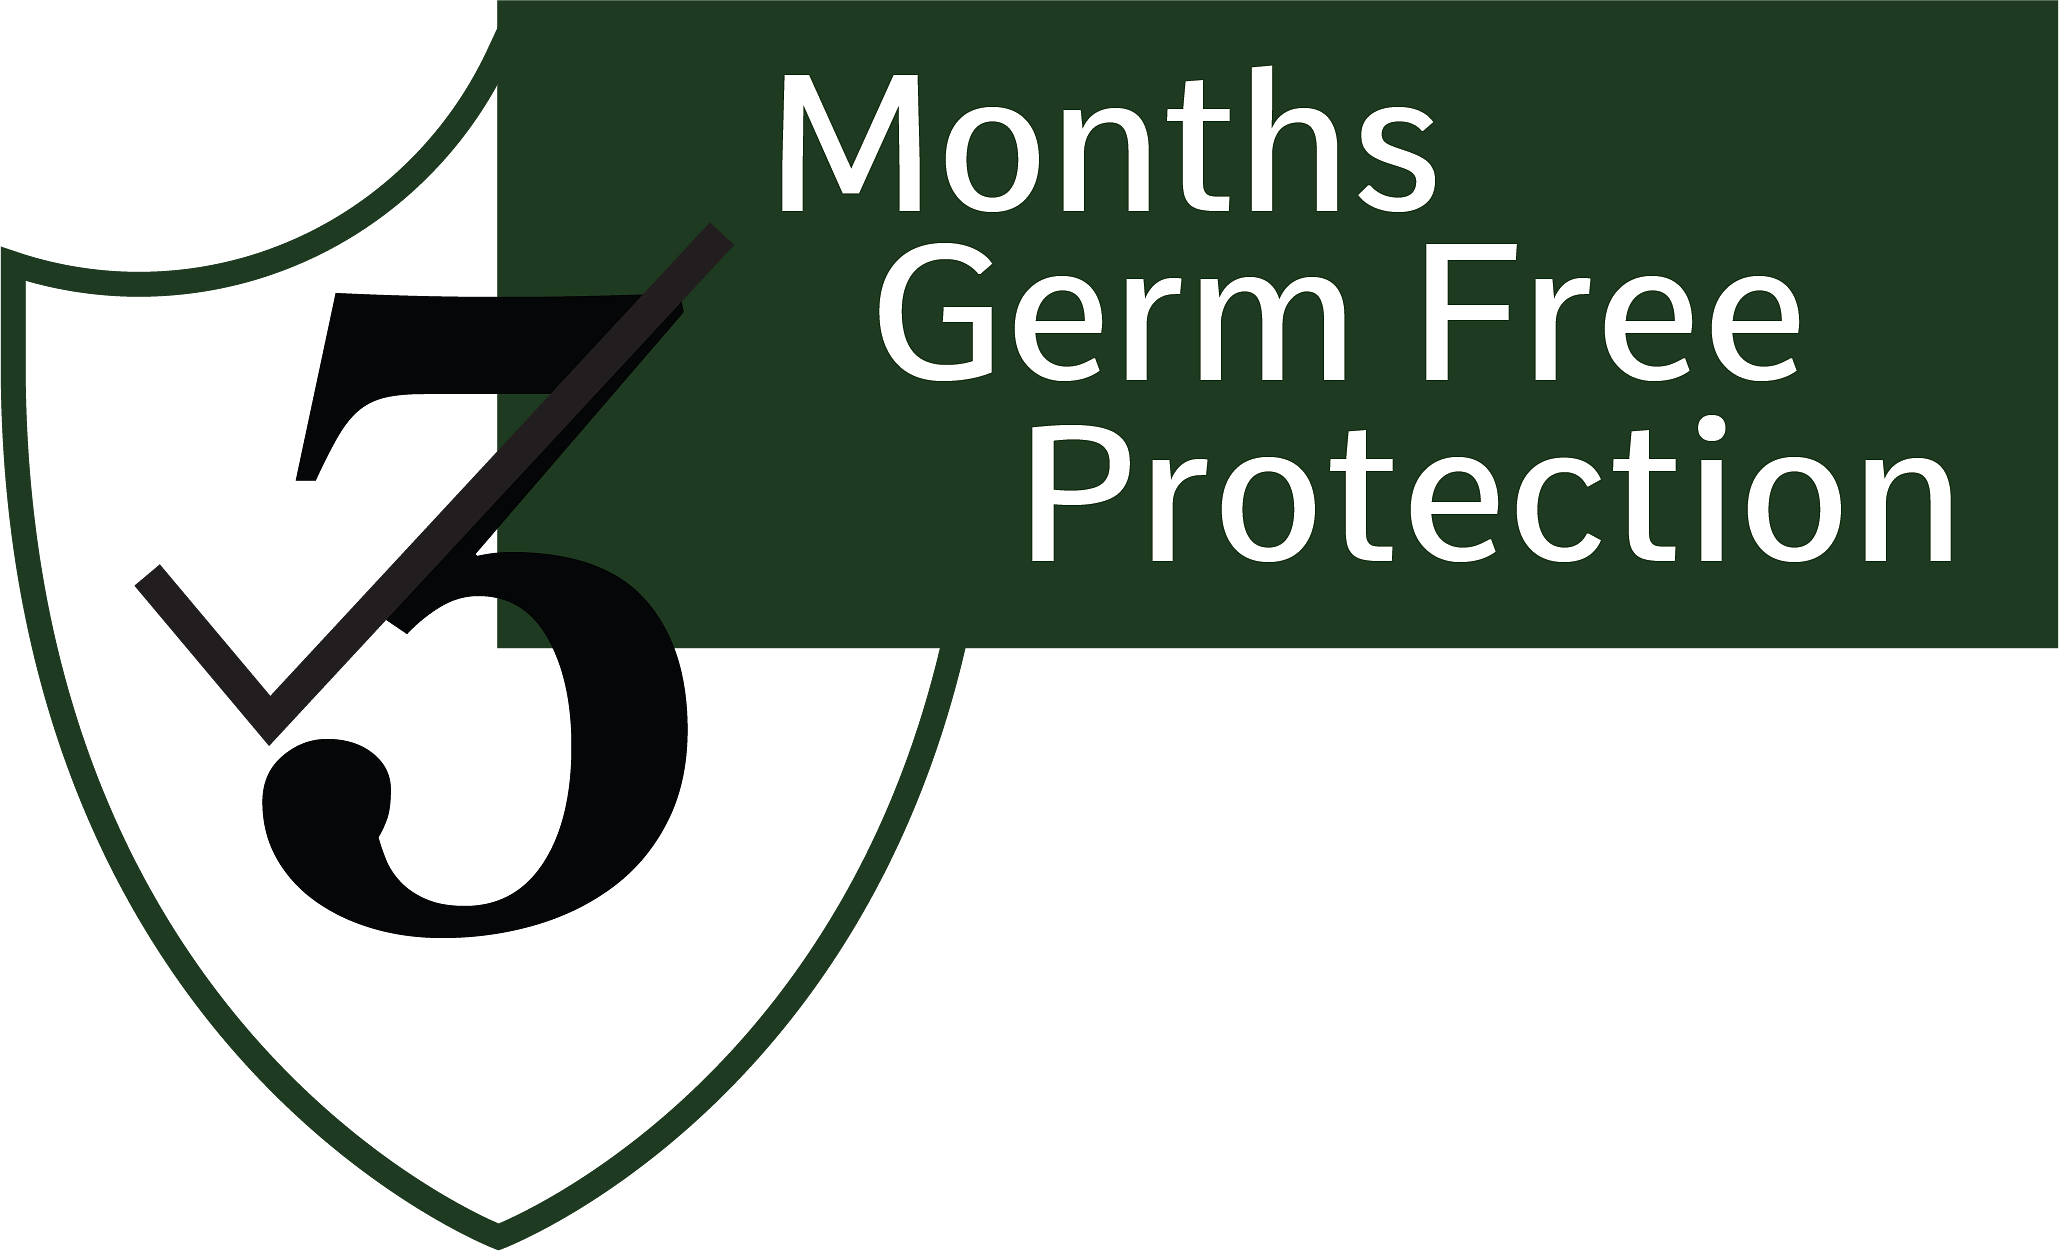 3 Months Germ Free Protection